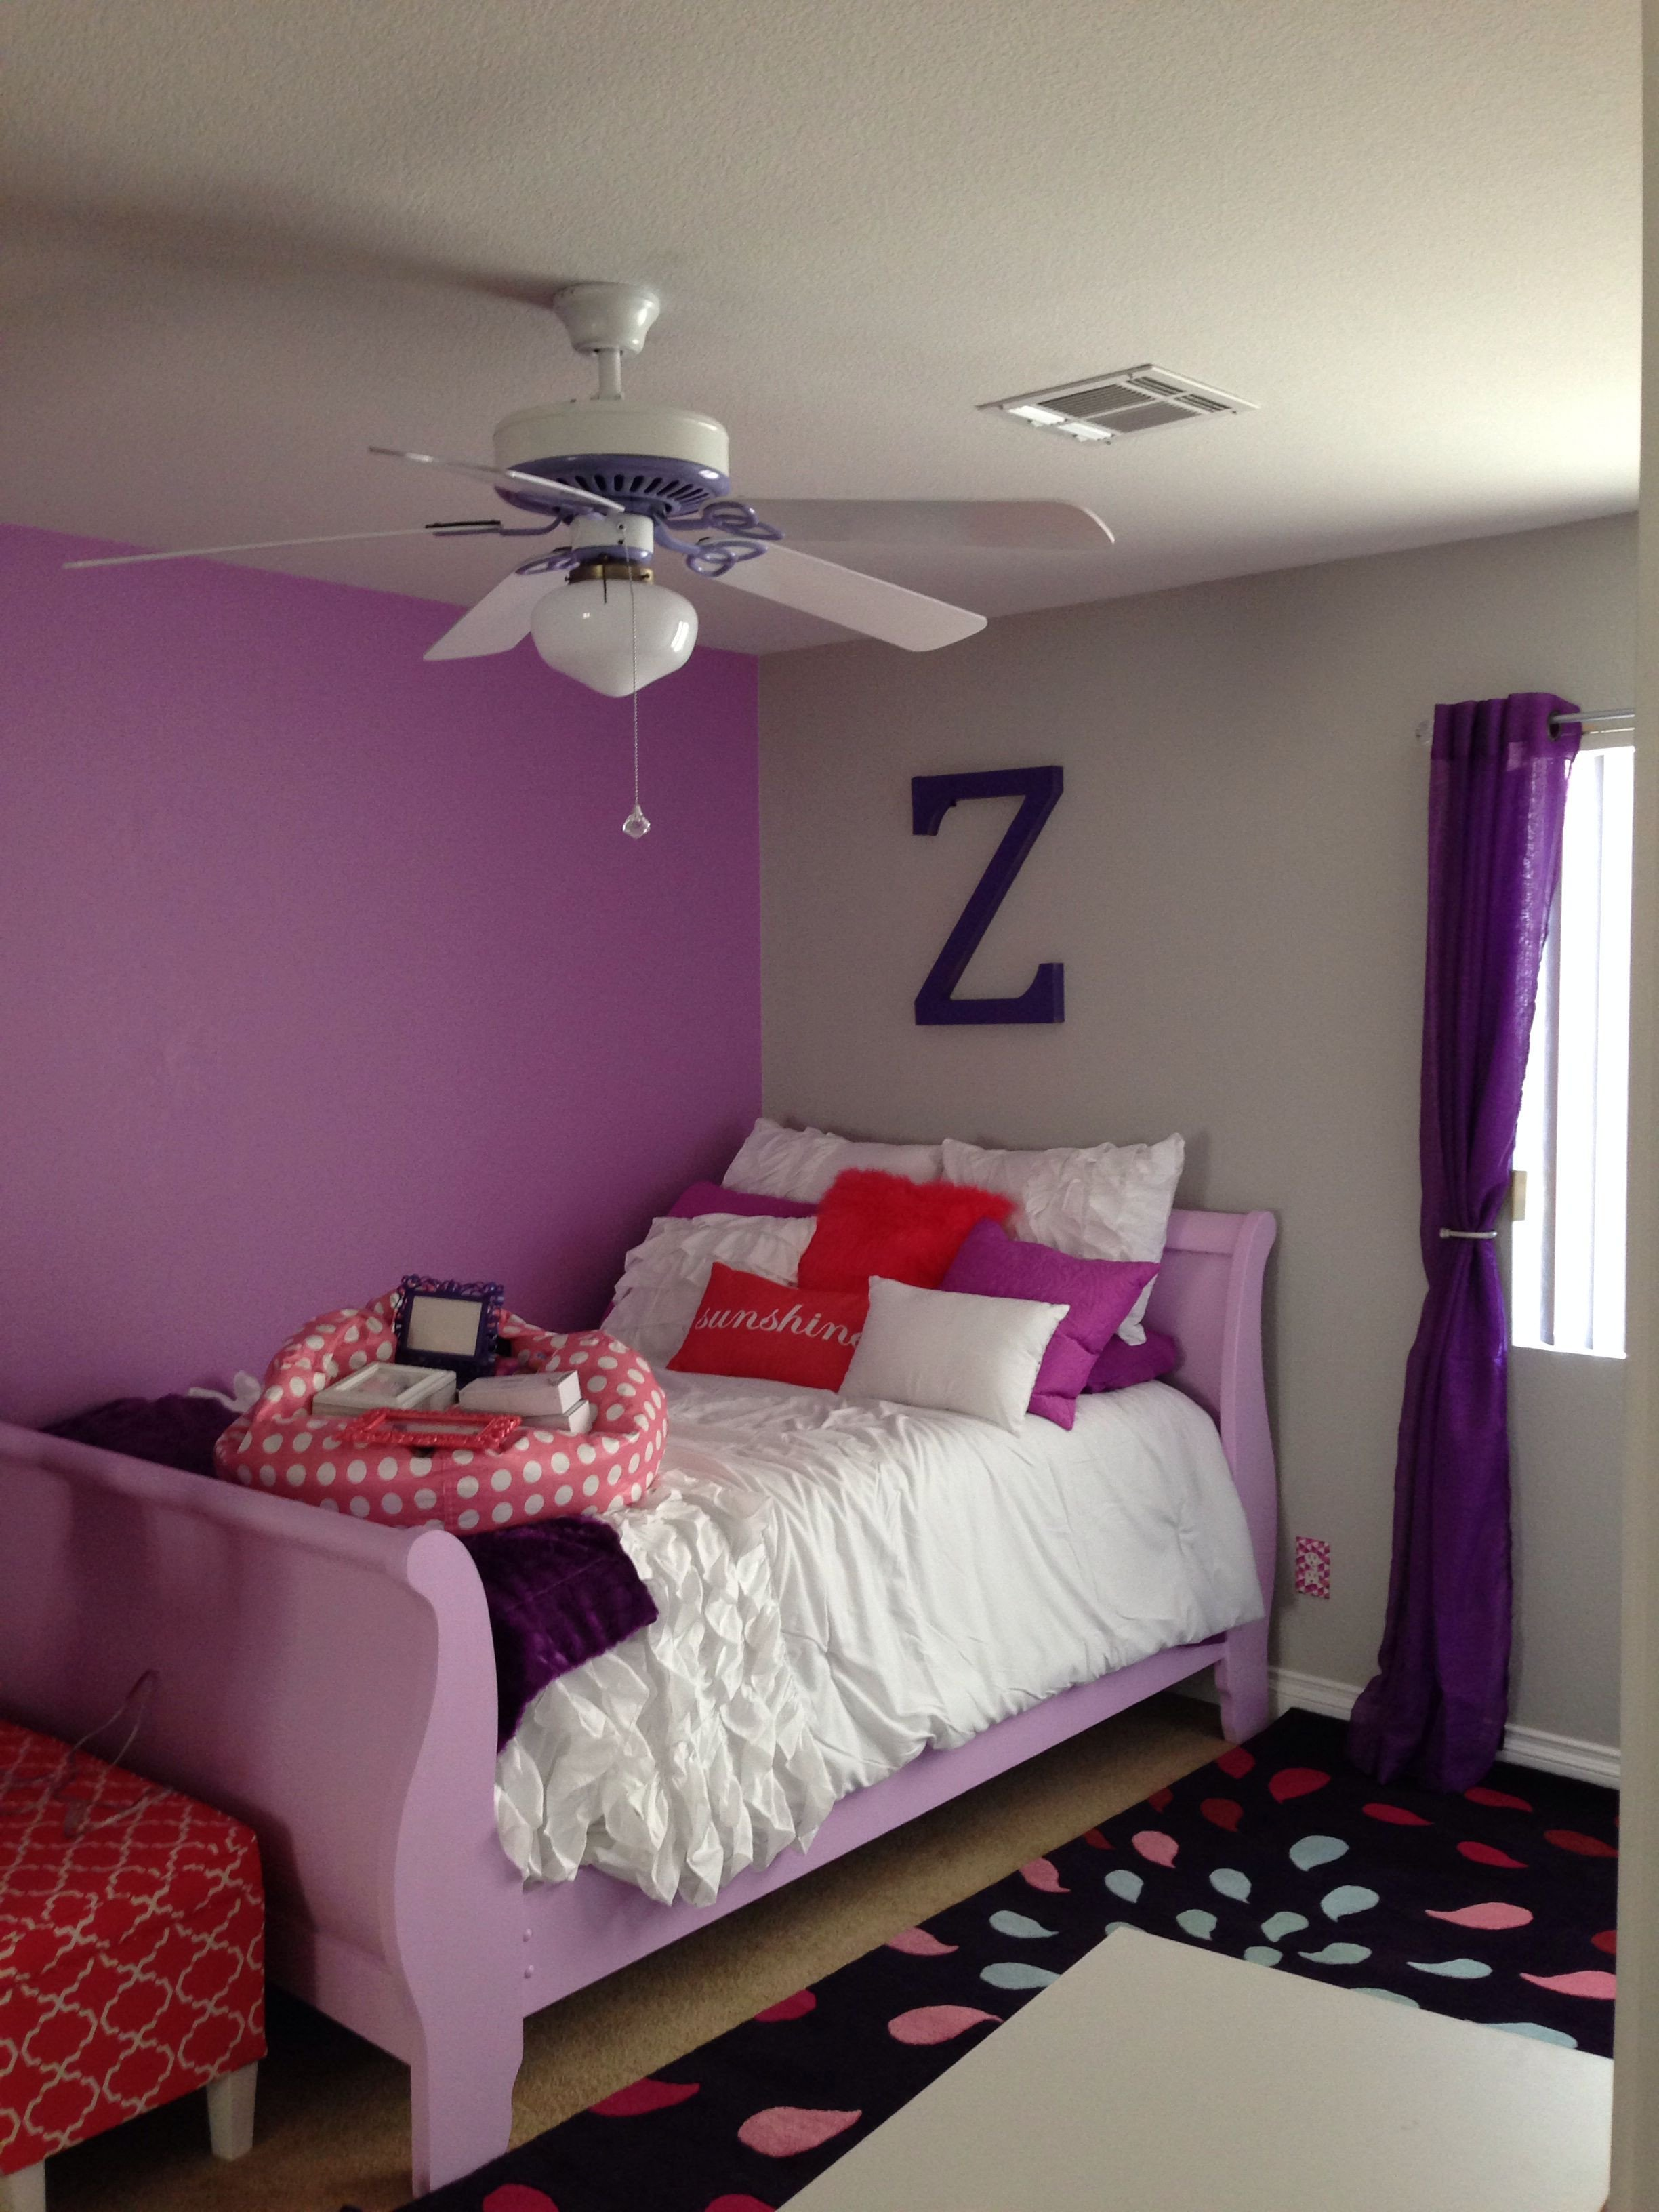 Ceiling Fans for Girl Bedroom Best Of Purple and Coral Girls Bedroom Painted Sleigh Bed $50 From